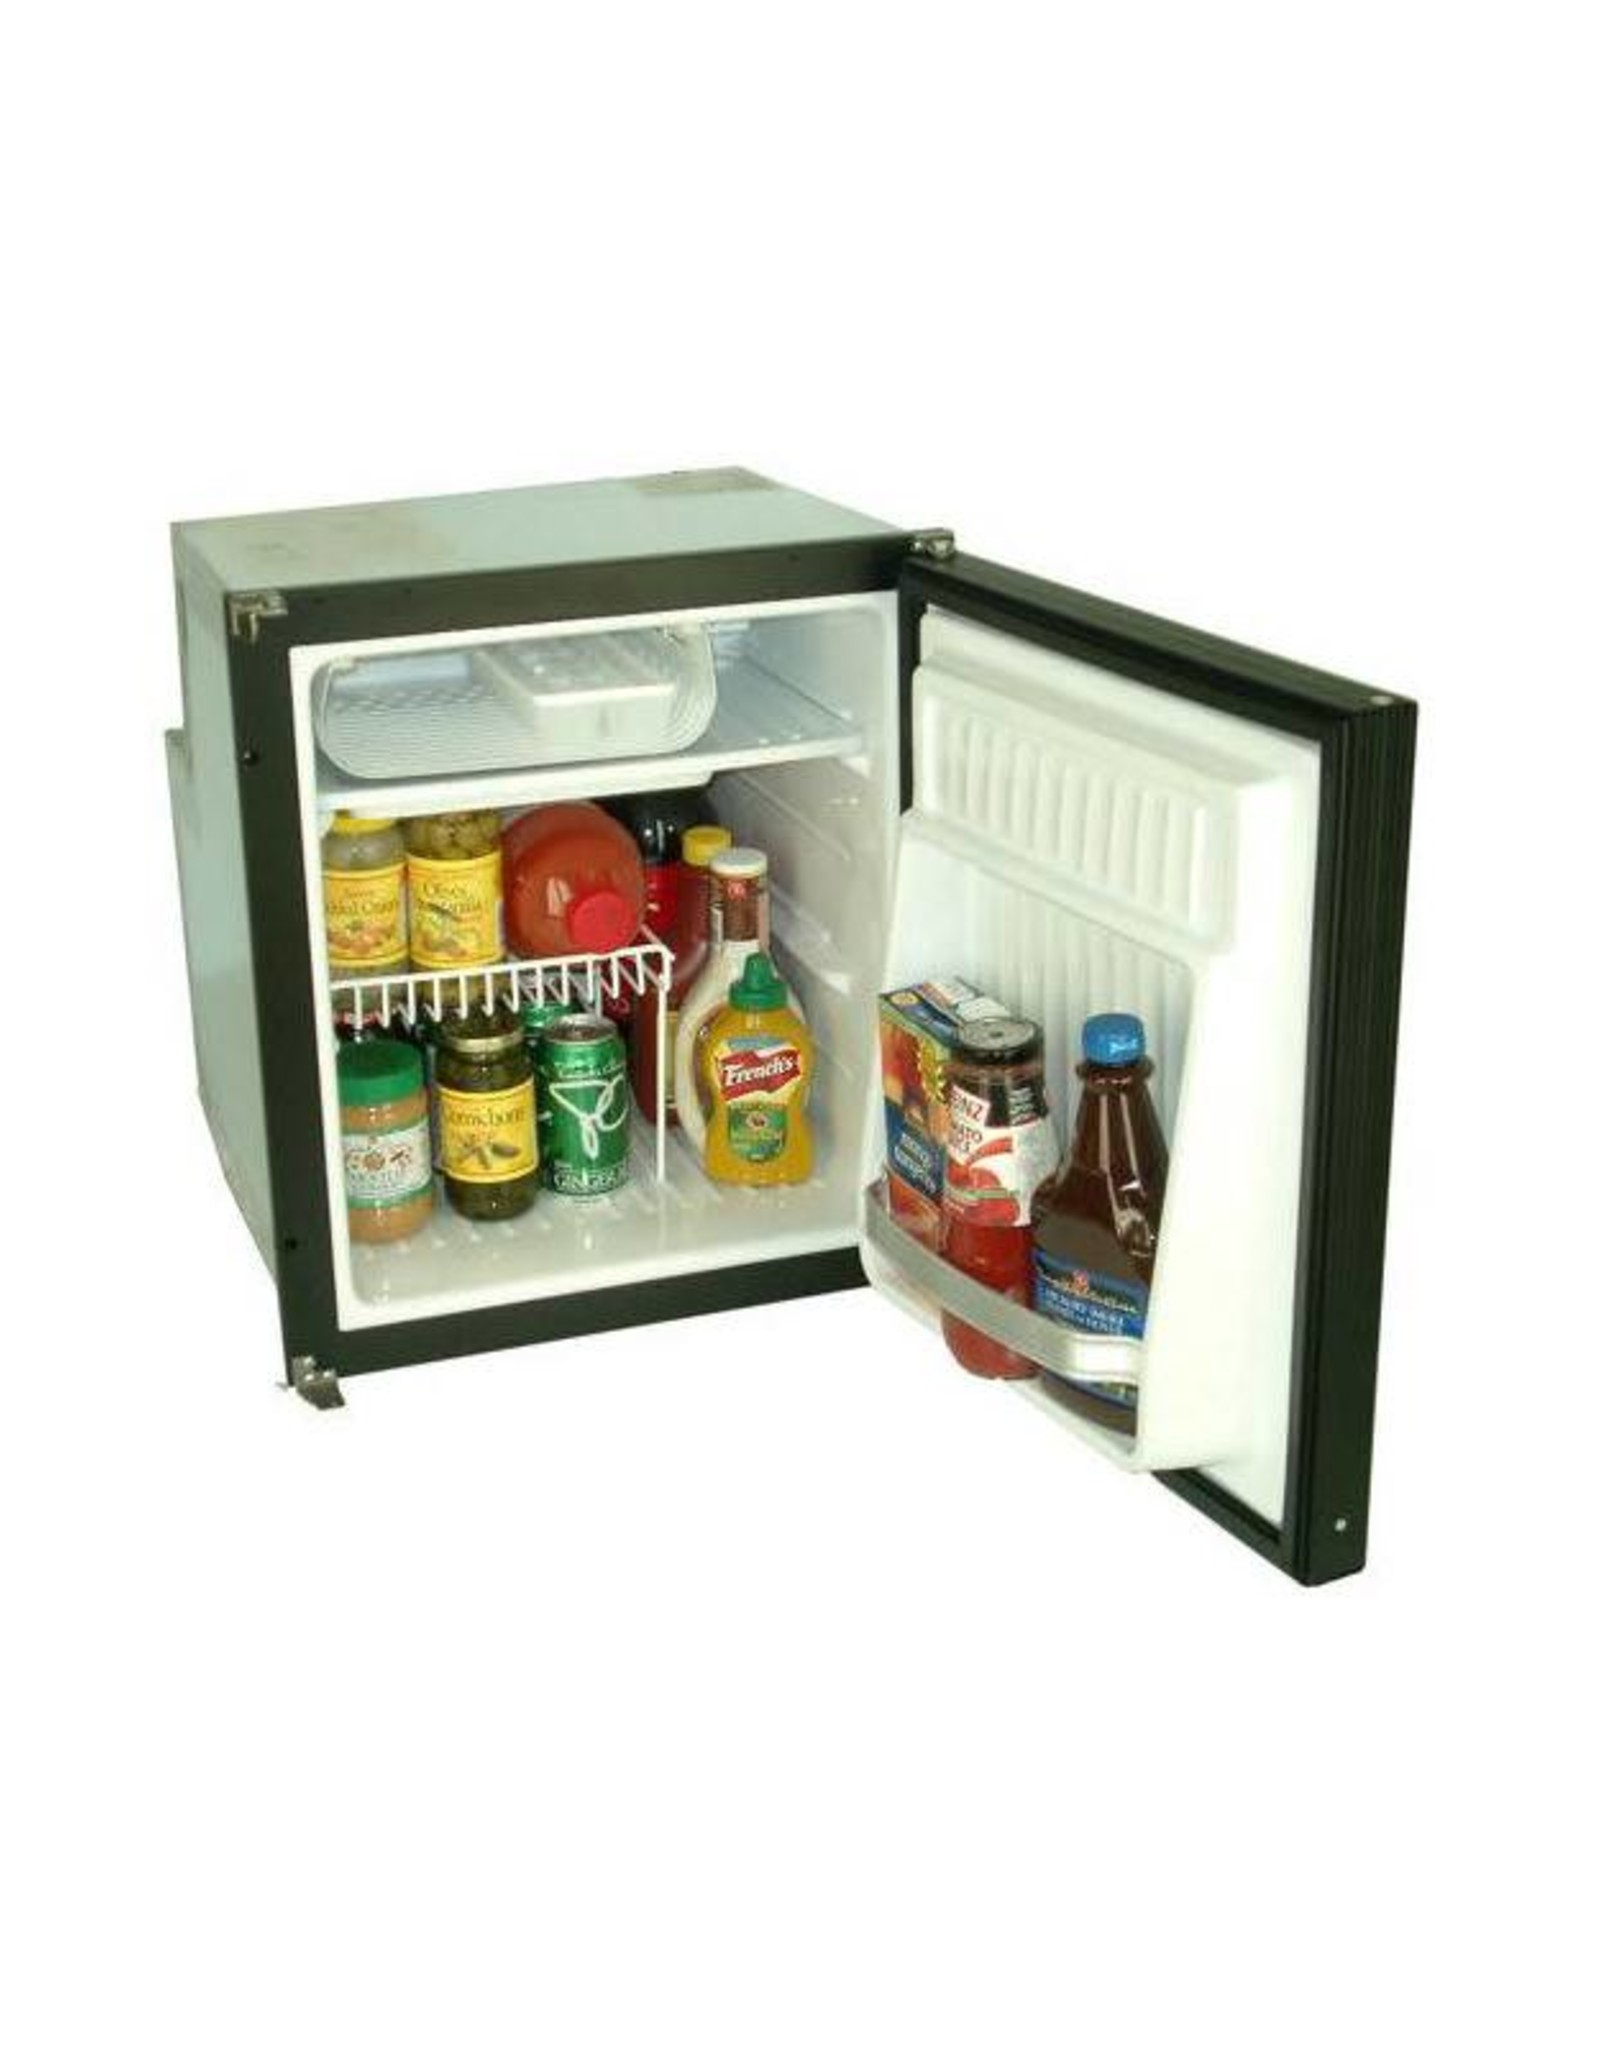 R2600 DC  2.4 cu.ft fridge only DC only